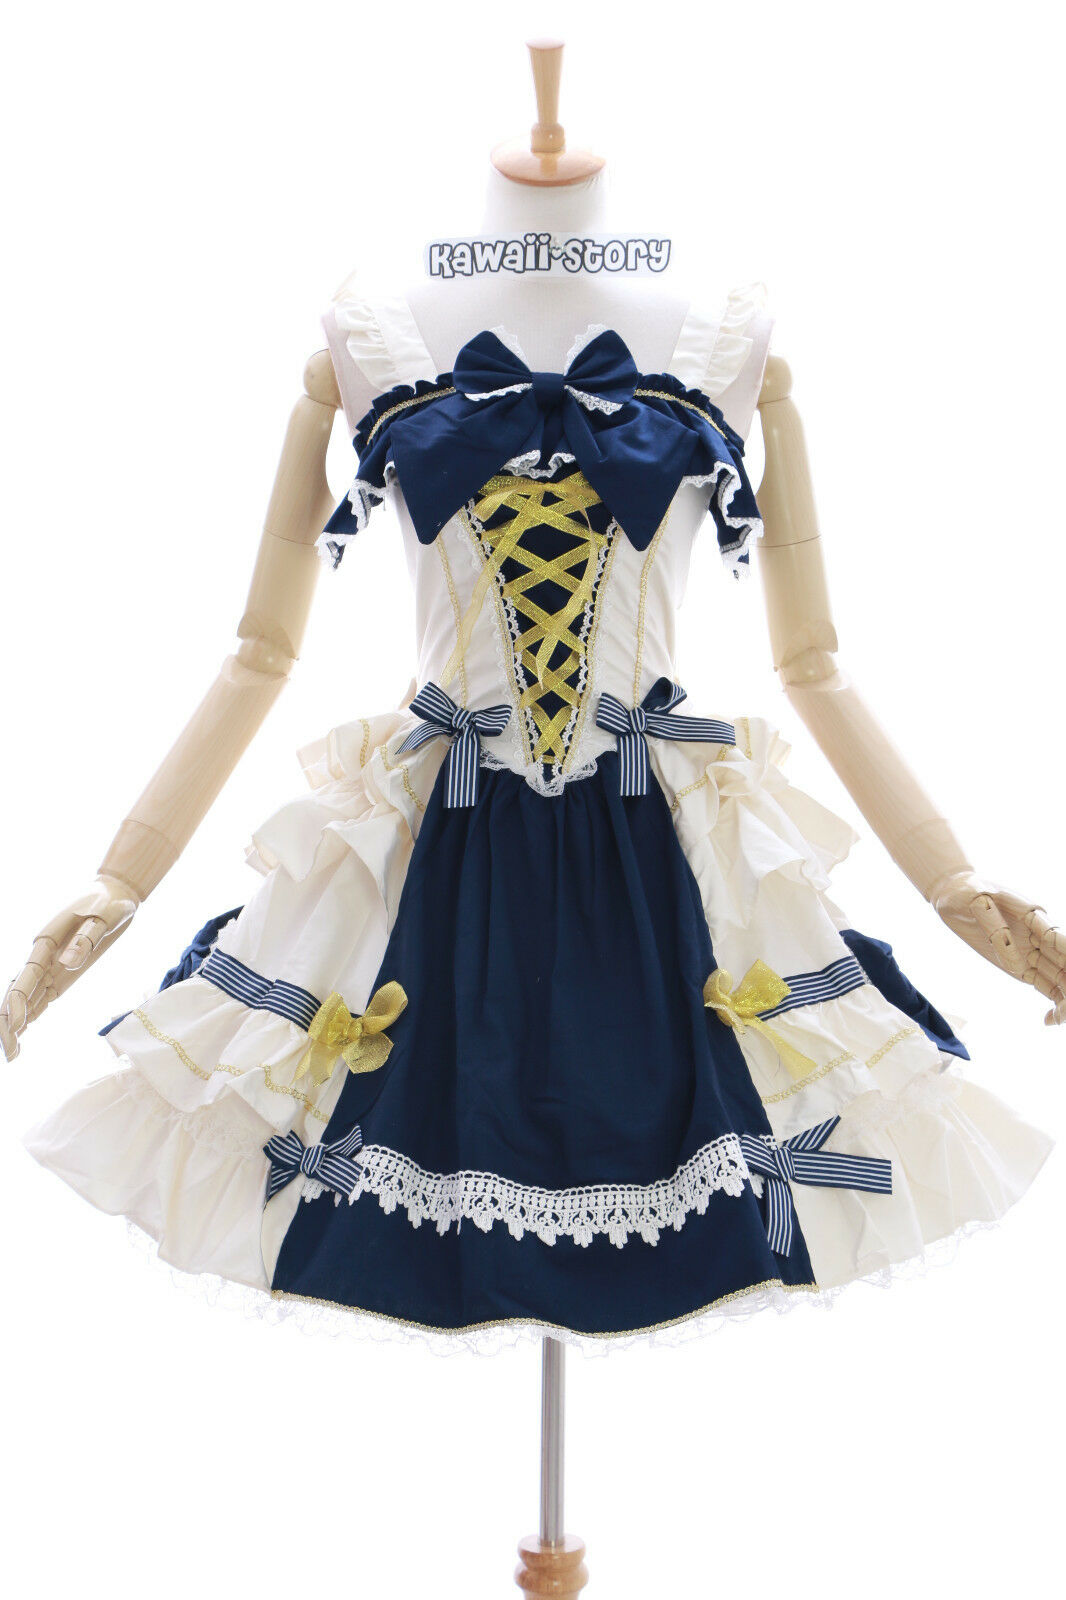 JL-620-1 white blue Stretch Classic Gothic Lolita Kleid Kostüm Kostüm Kostüm dress Cosplay 924779